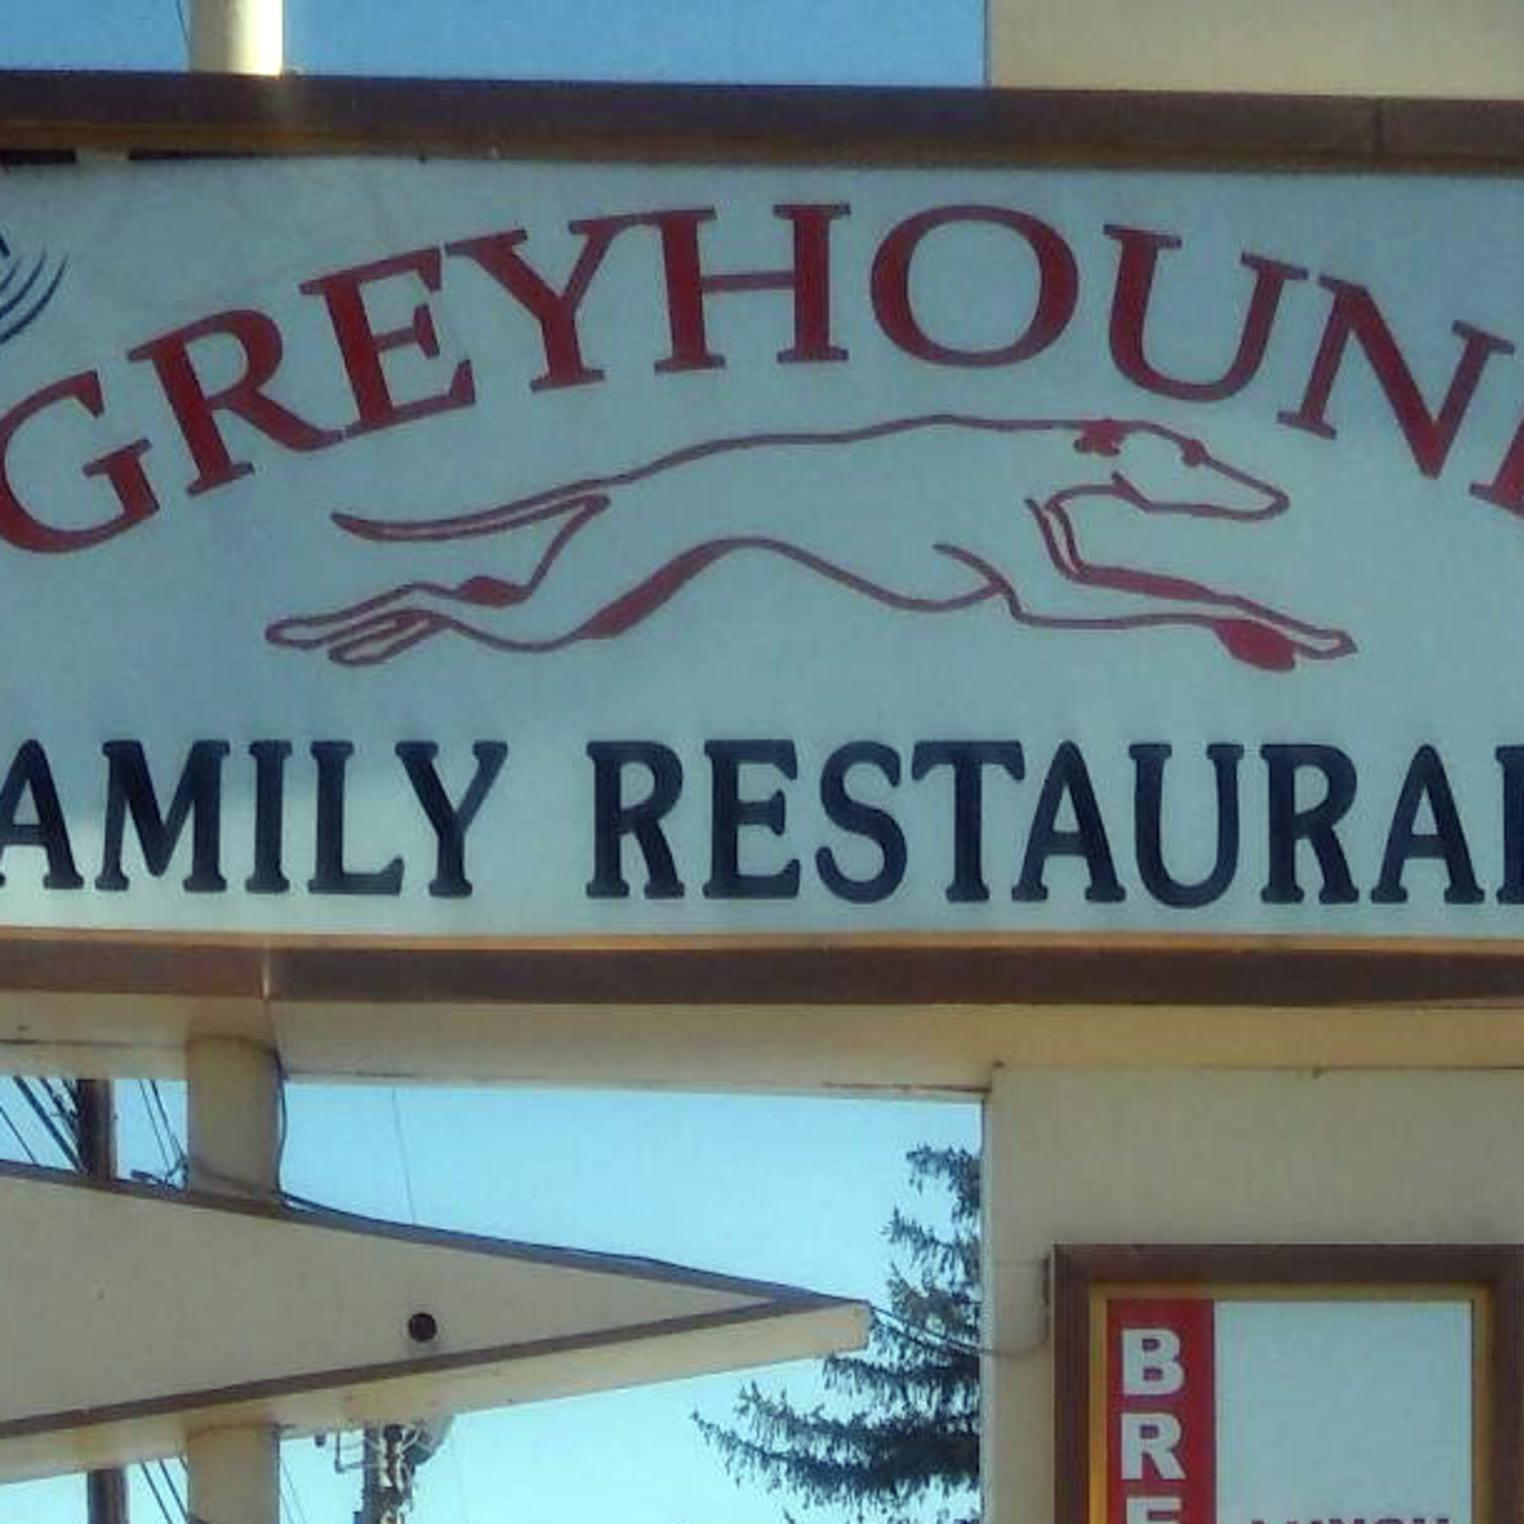 The Greyhound Diner